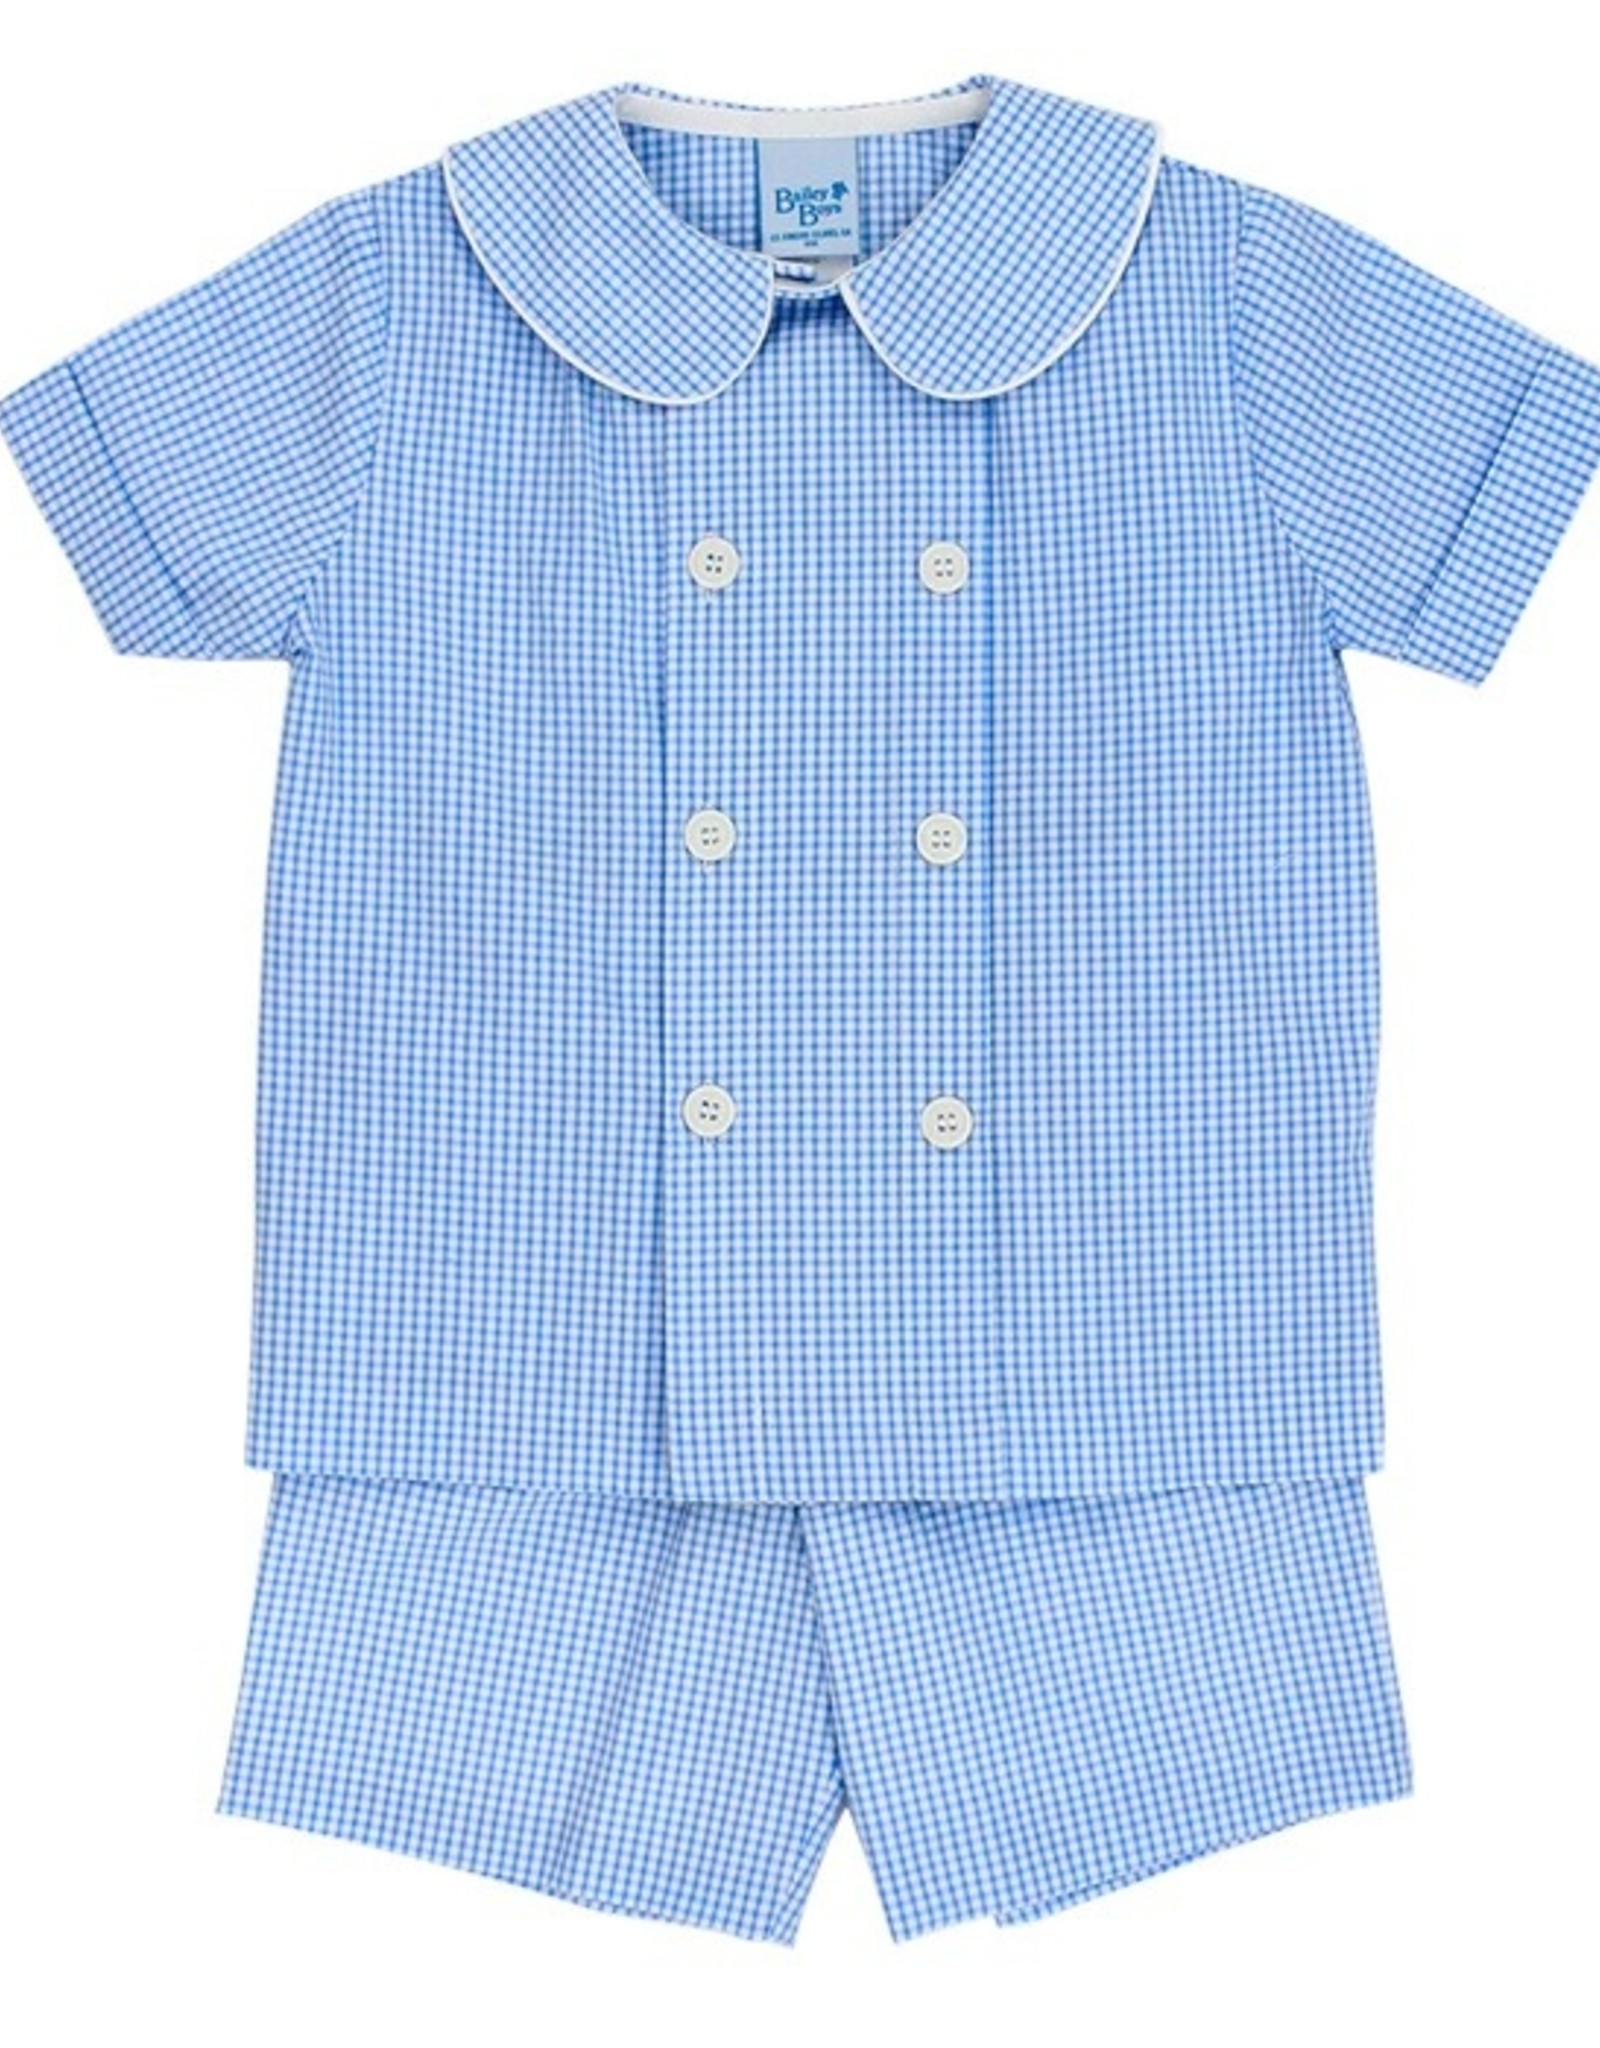 The Bailey Boys Blue Check Seersucker Dressy Short Set